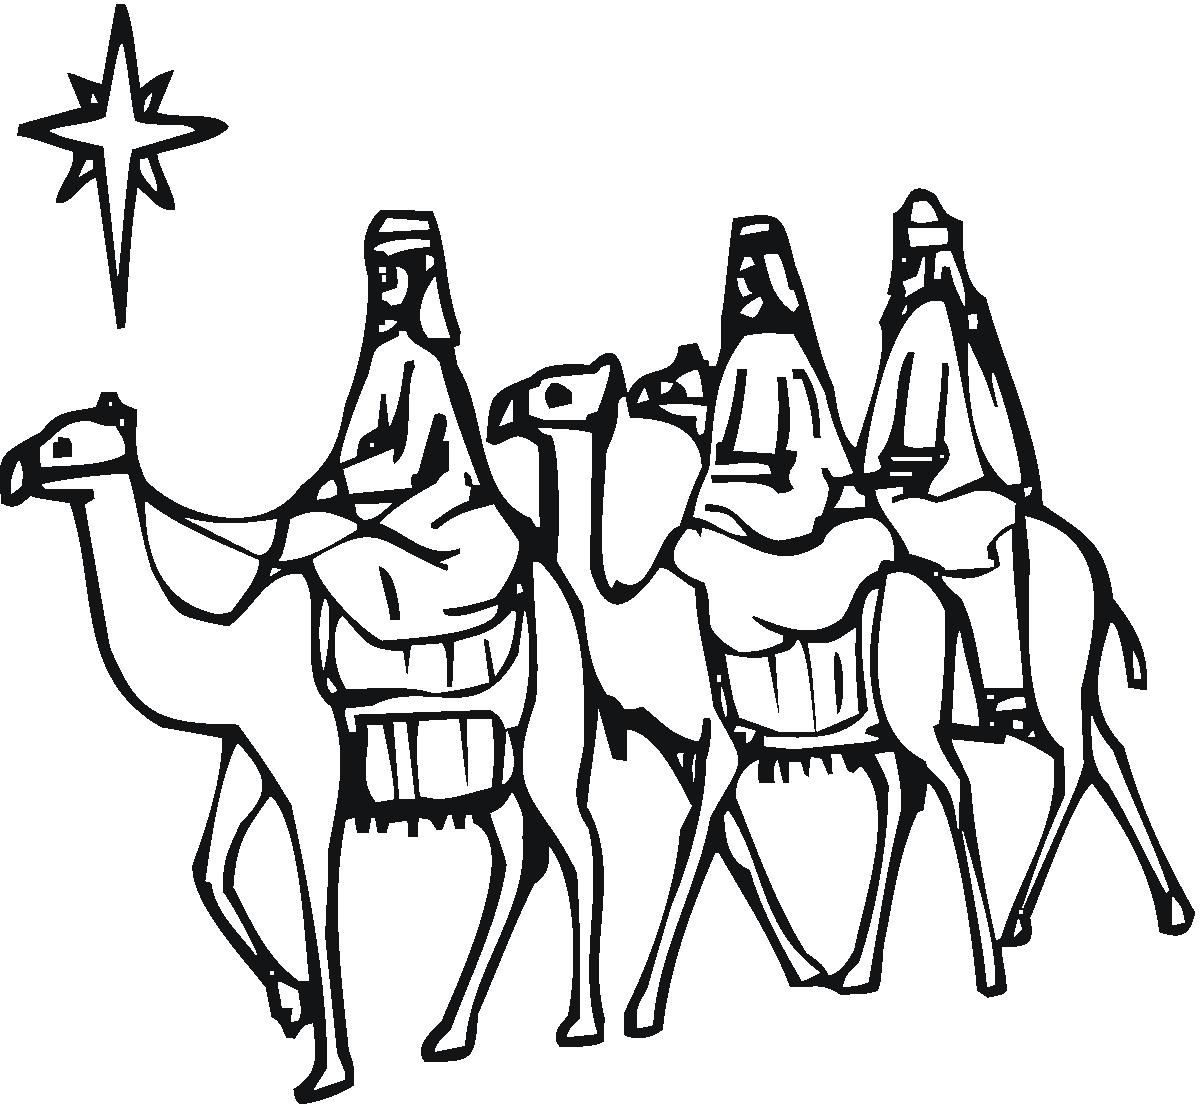 Uncategorized Wisemen Coloring Page three wise men coloring pages free stockings pages